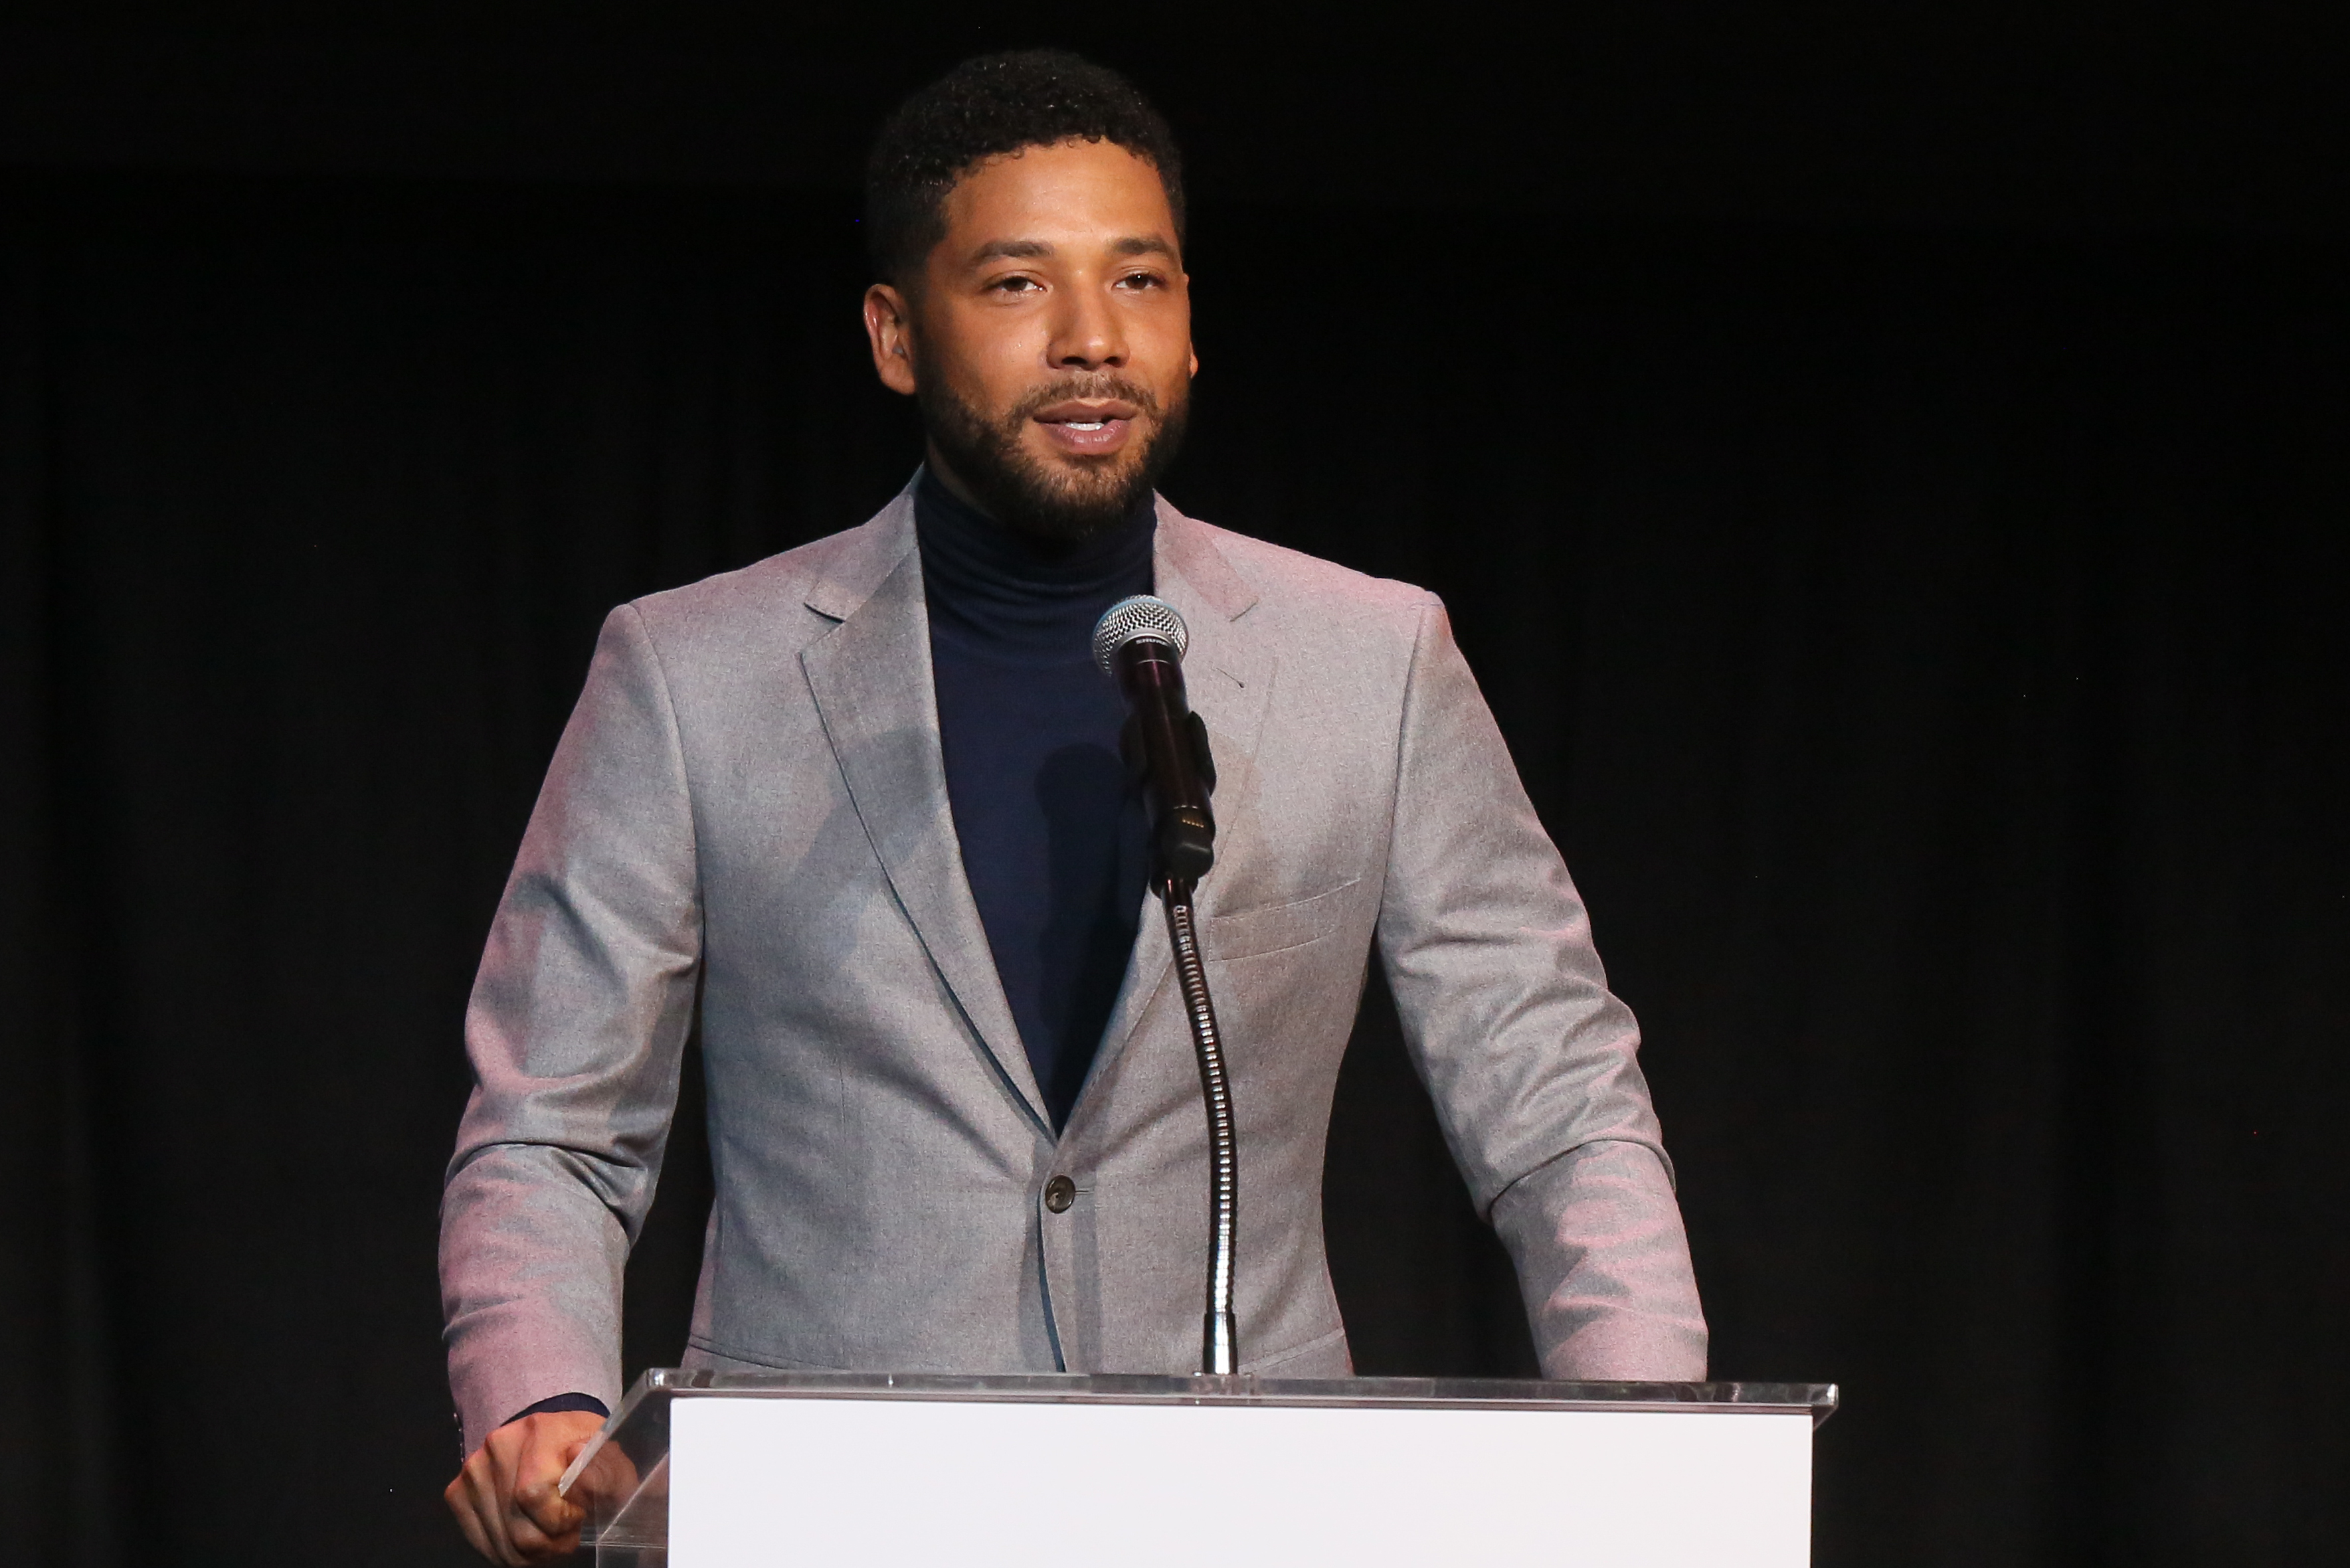 Jussie Smollett speaks at the Children's Defense Fund California's 28th Annual Beat The Odds Awards at Skirball Cultural Center in Los Angeles on Dec. 6, 2018.